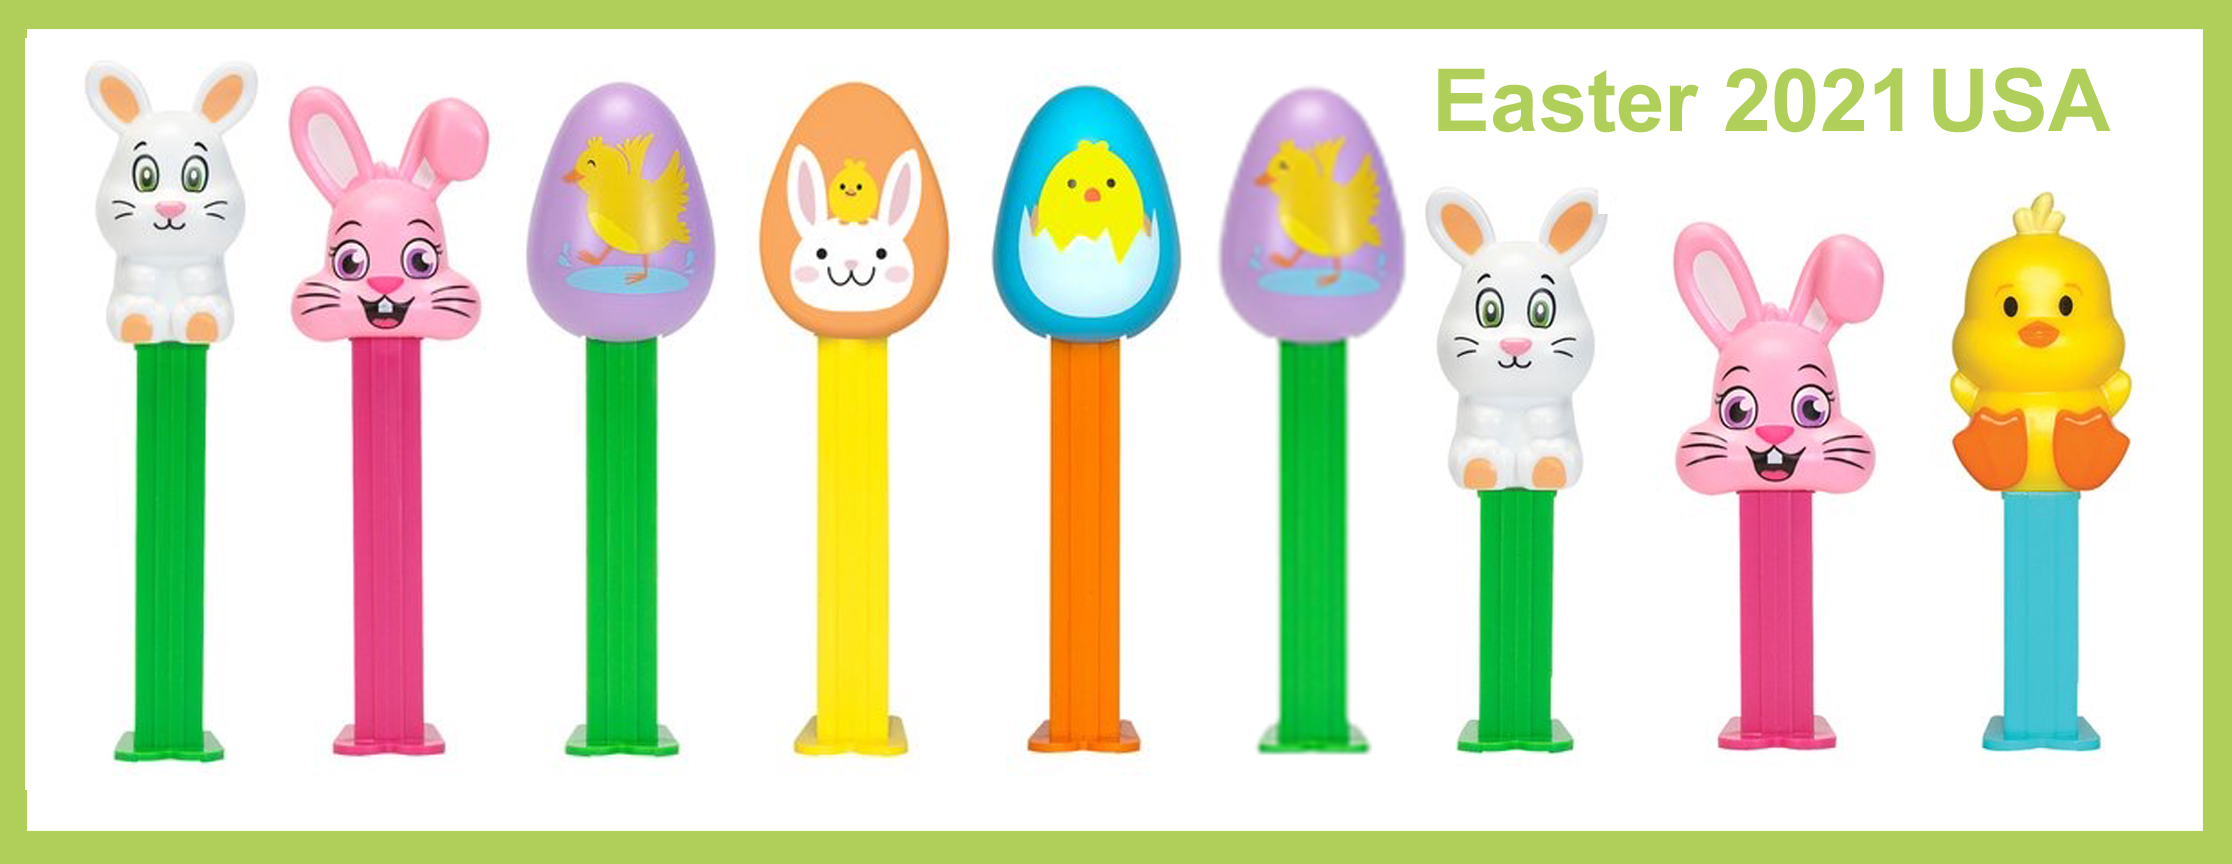 Easter 2021 Pez